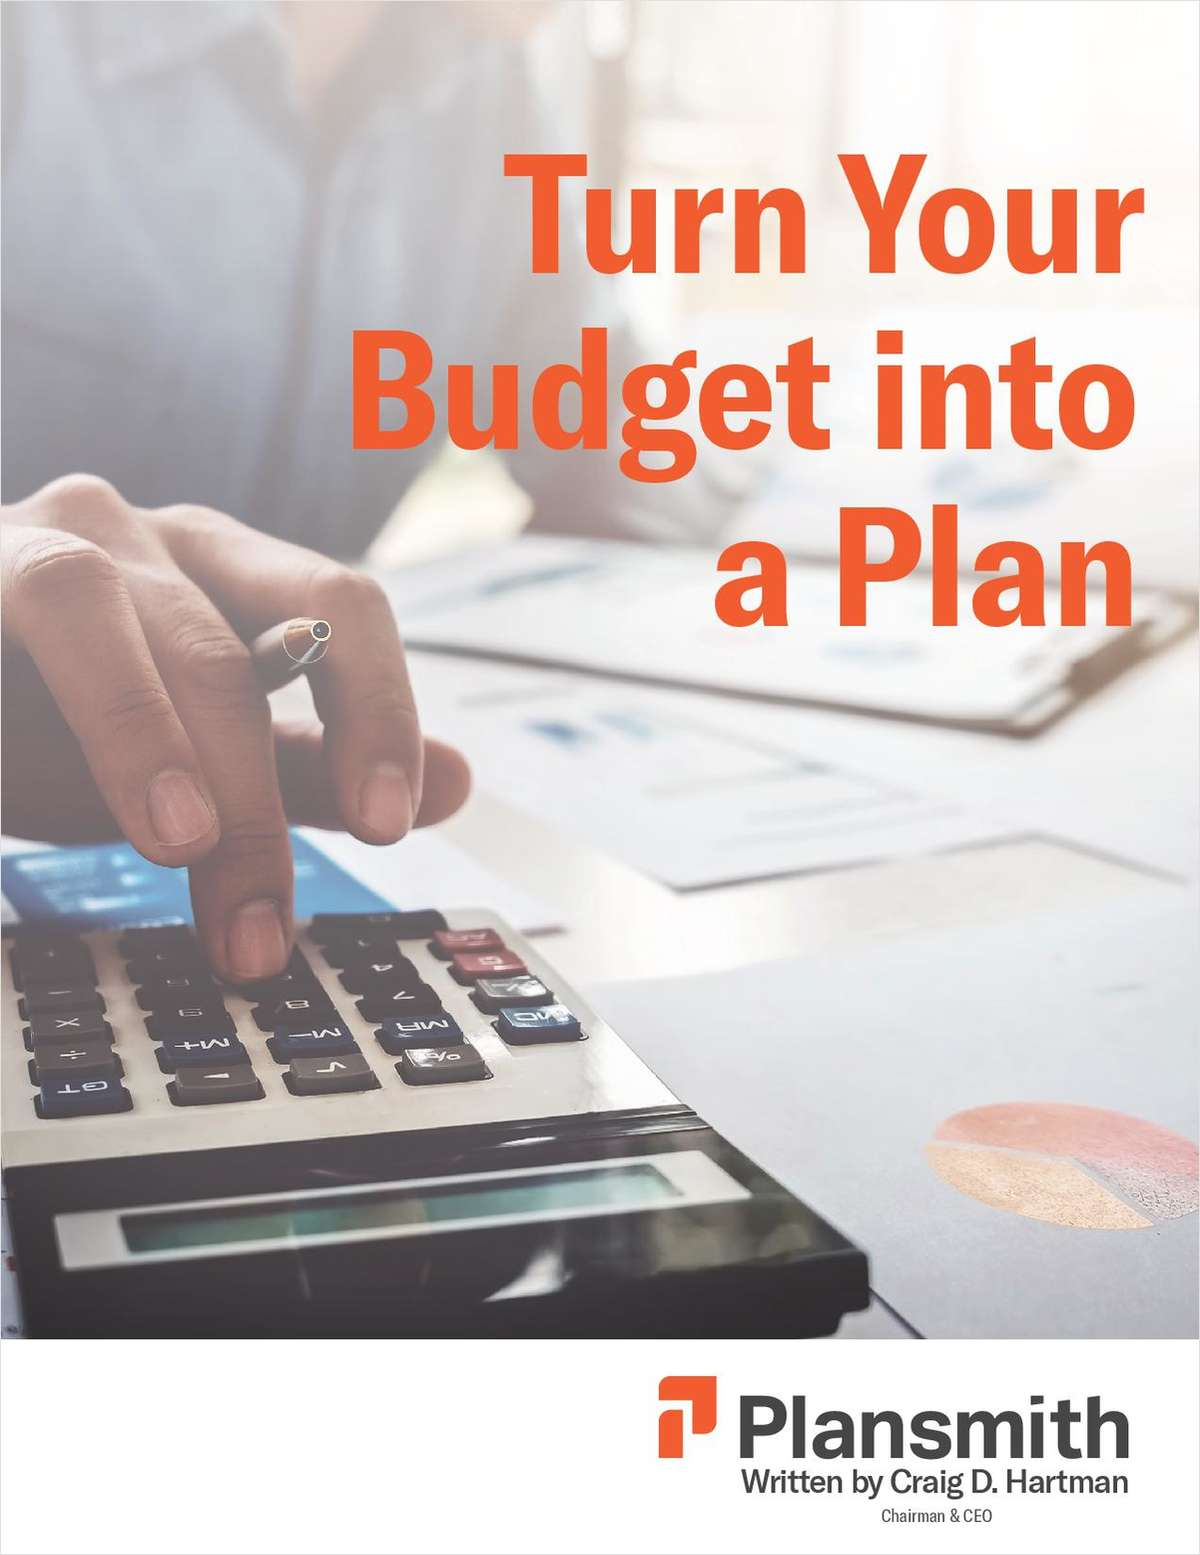 Turn Your Budget Into a Plan for Growth